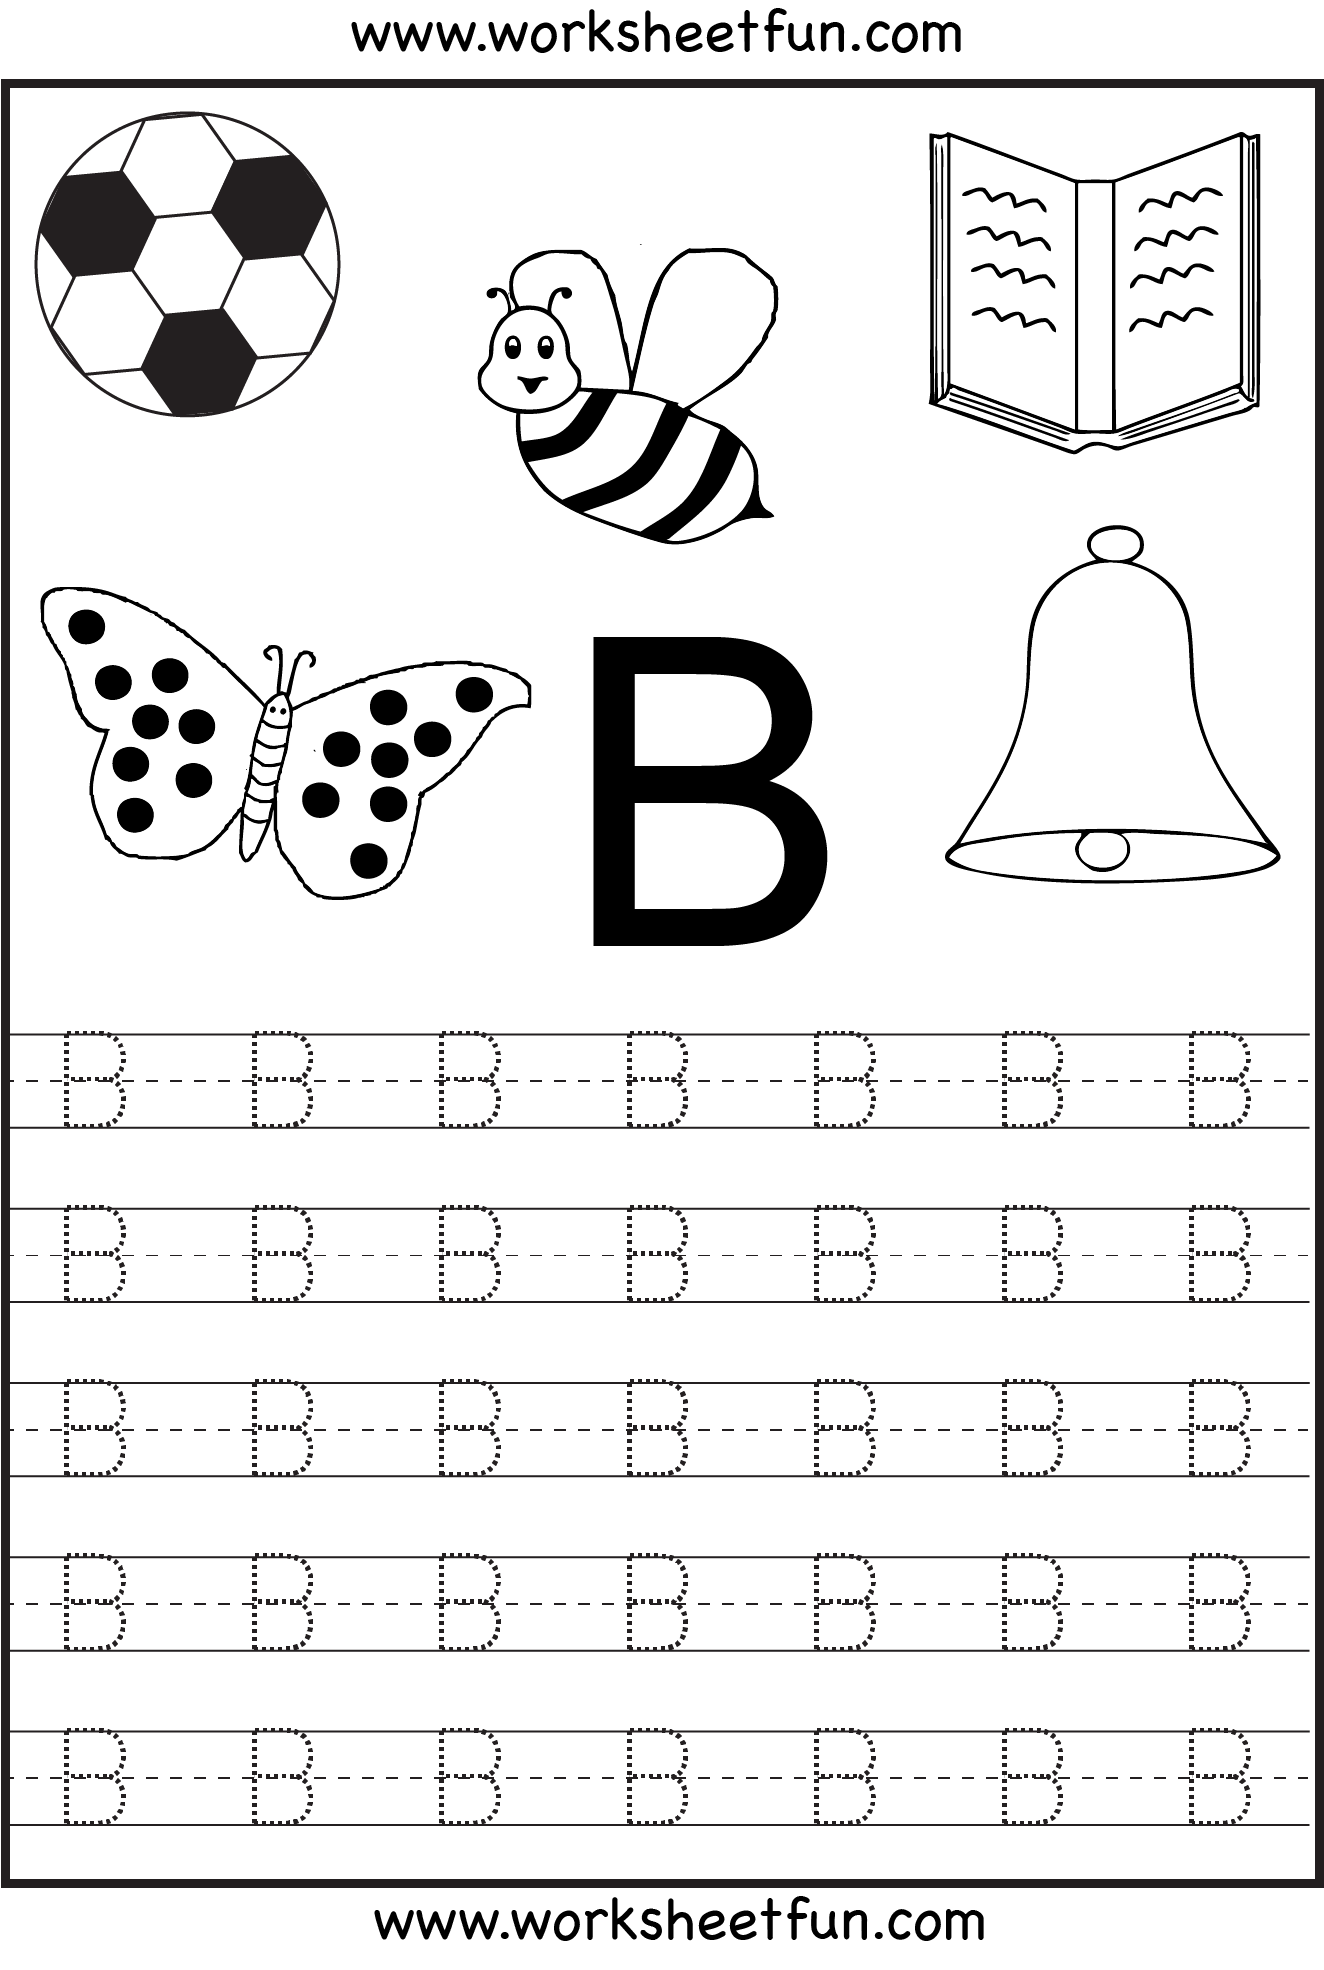 Worksheets Free Printable Alphabet Worksheets For Pre-k free printable letter tracing worksheets for kindergarten 26 worksheets